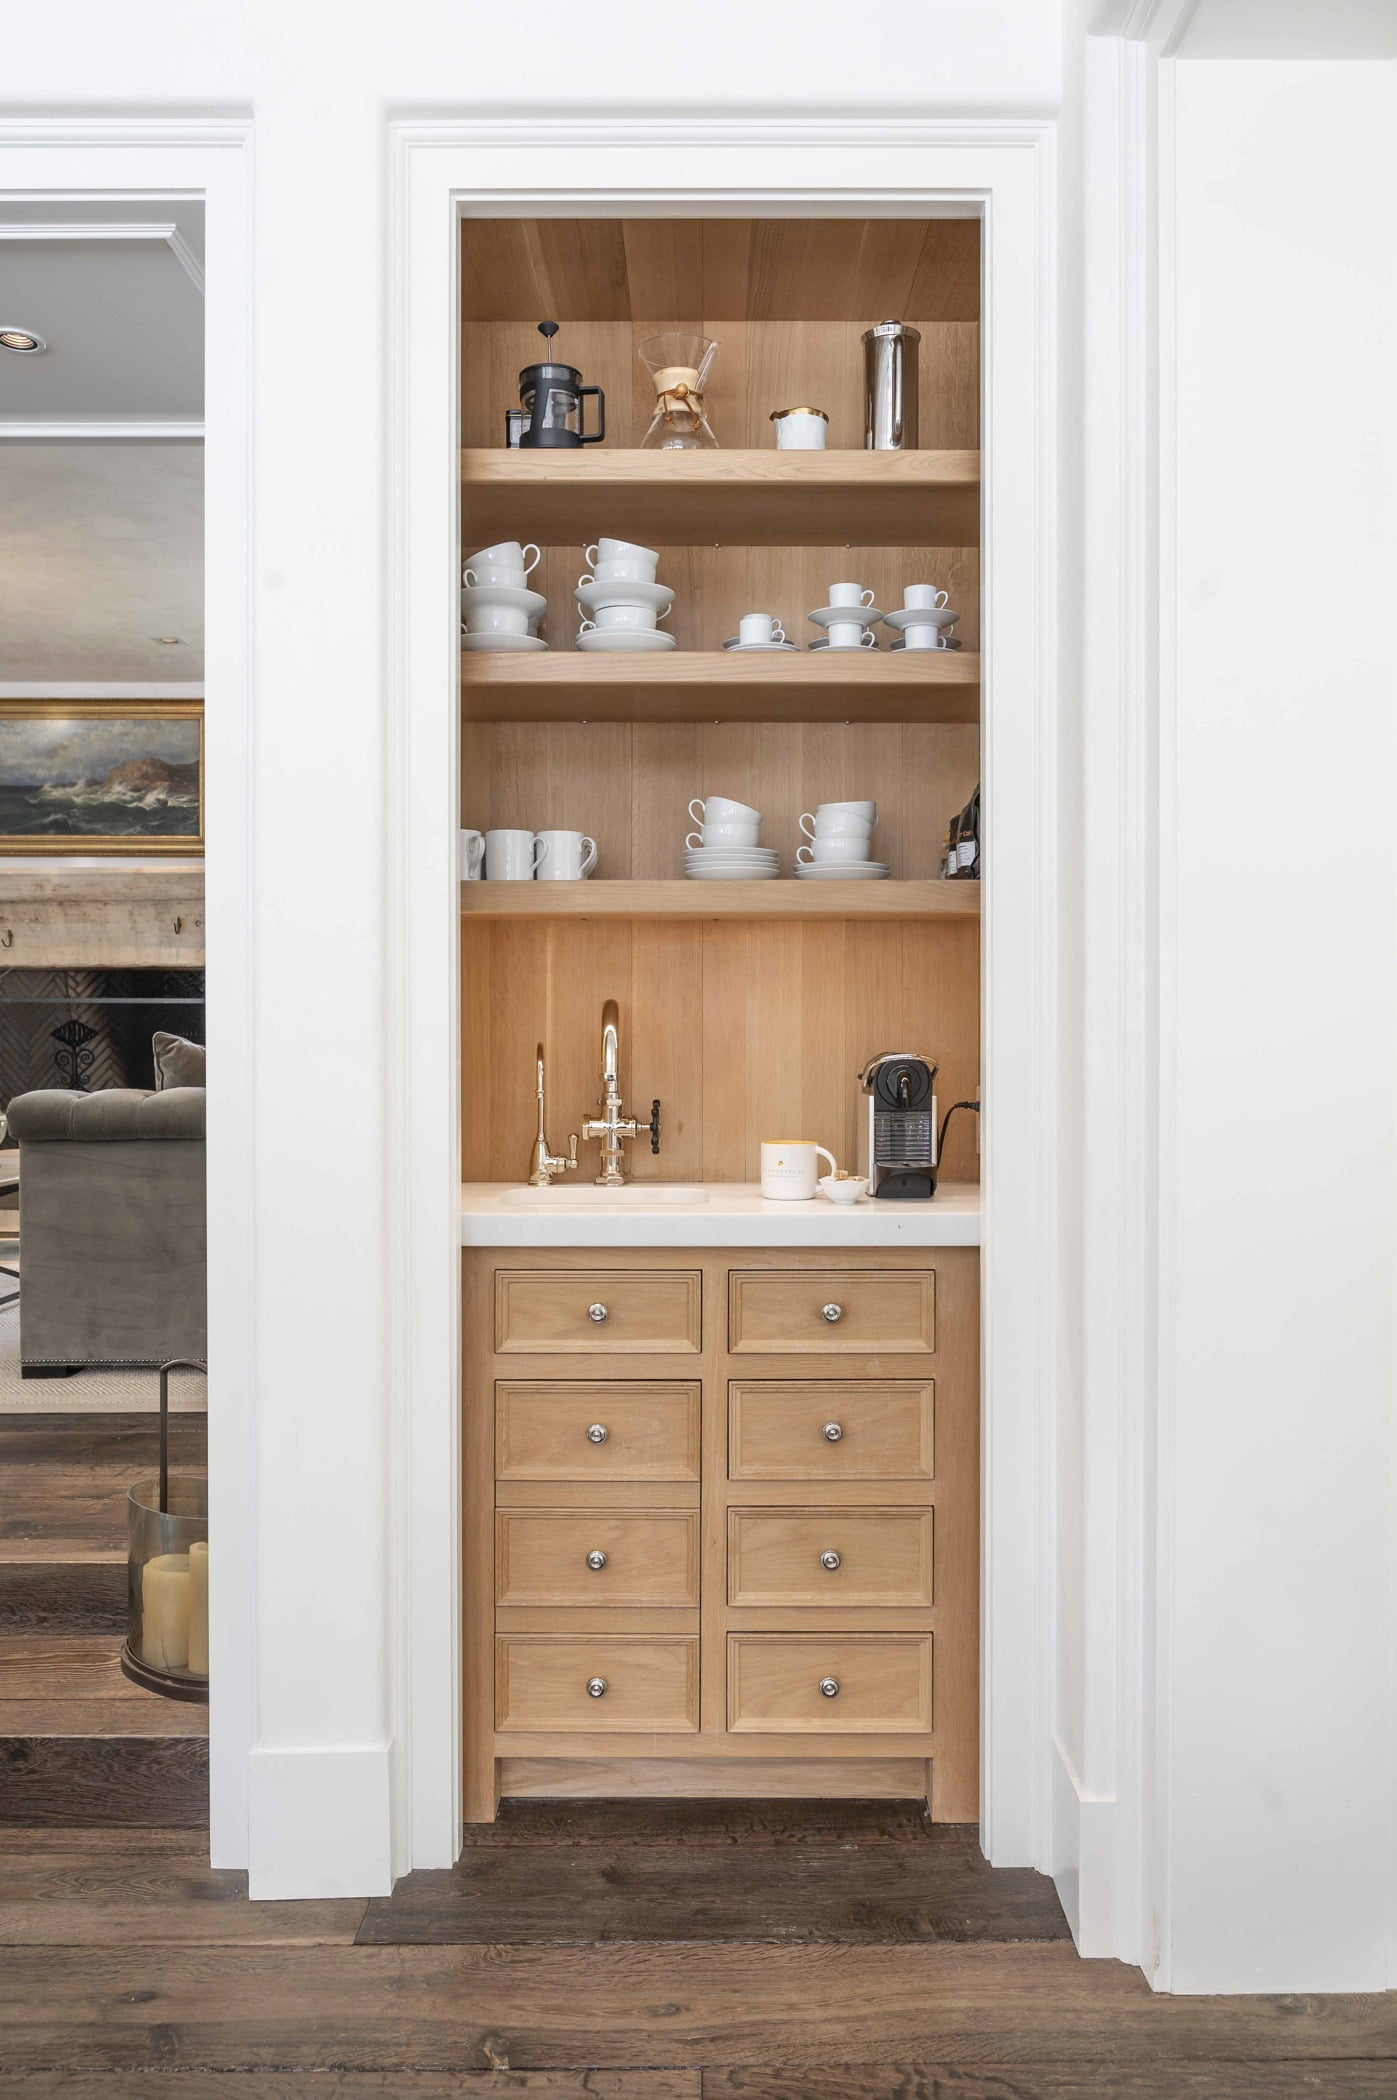 Transitional shelving space with light wood cabinetry and white marble countertops